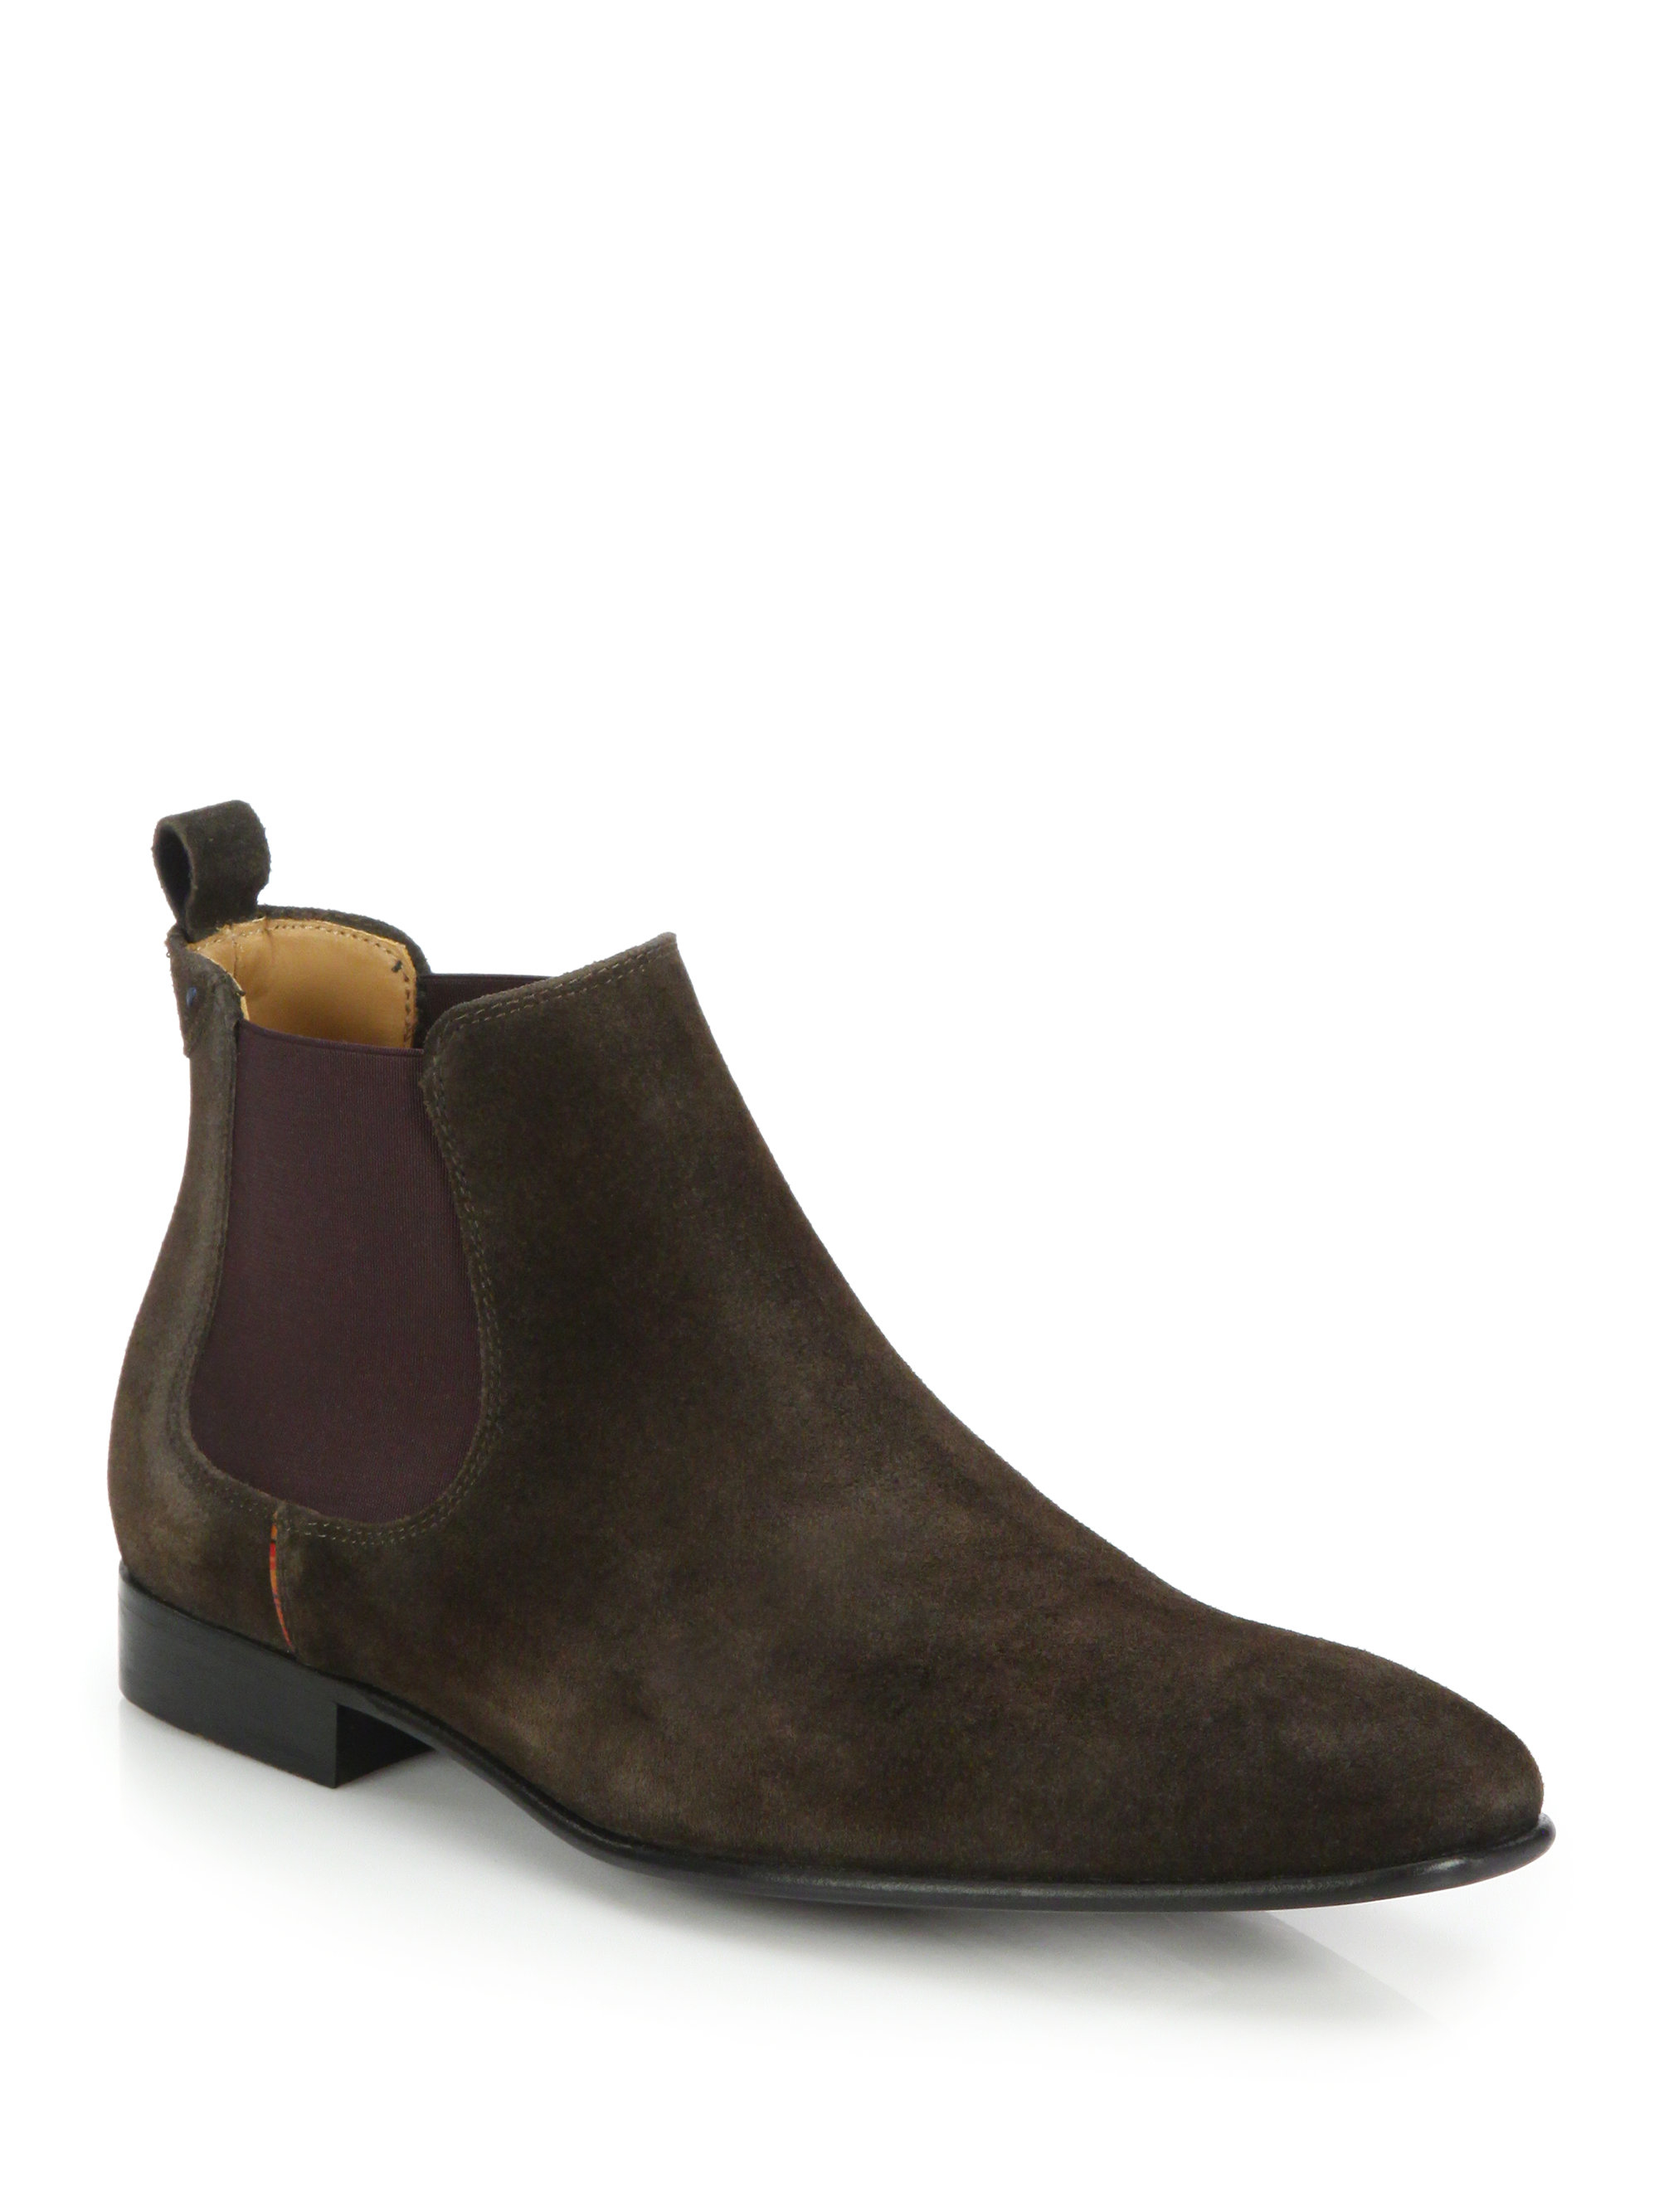 Paul Smith Falconer Suede Chelsea Boots In Brown For Men